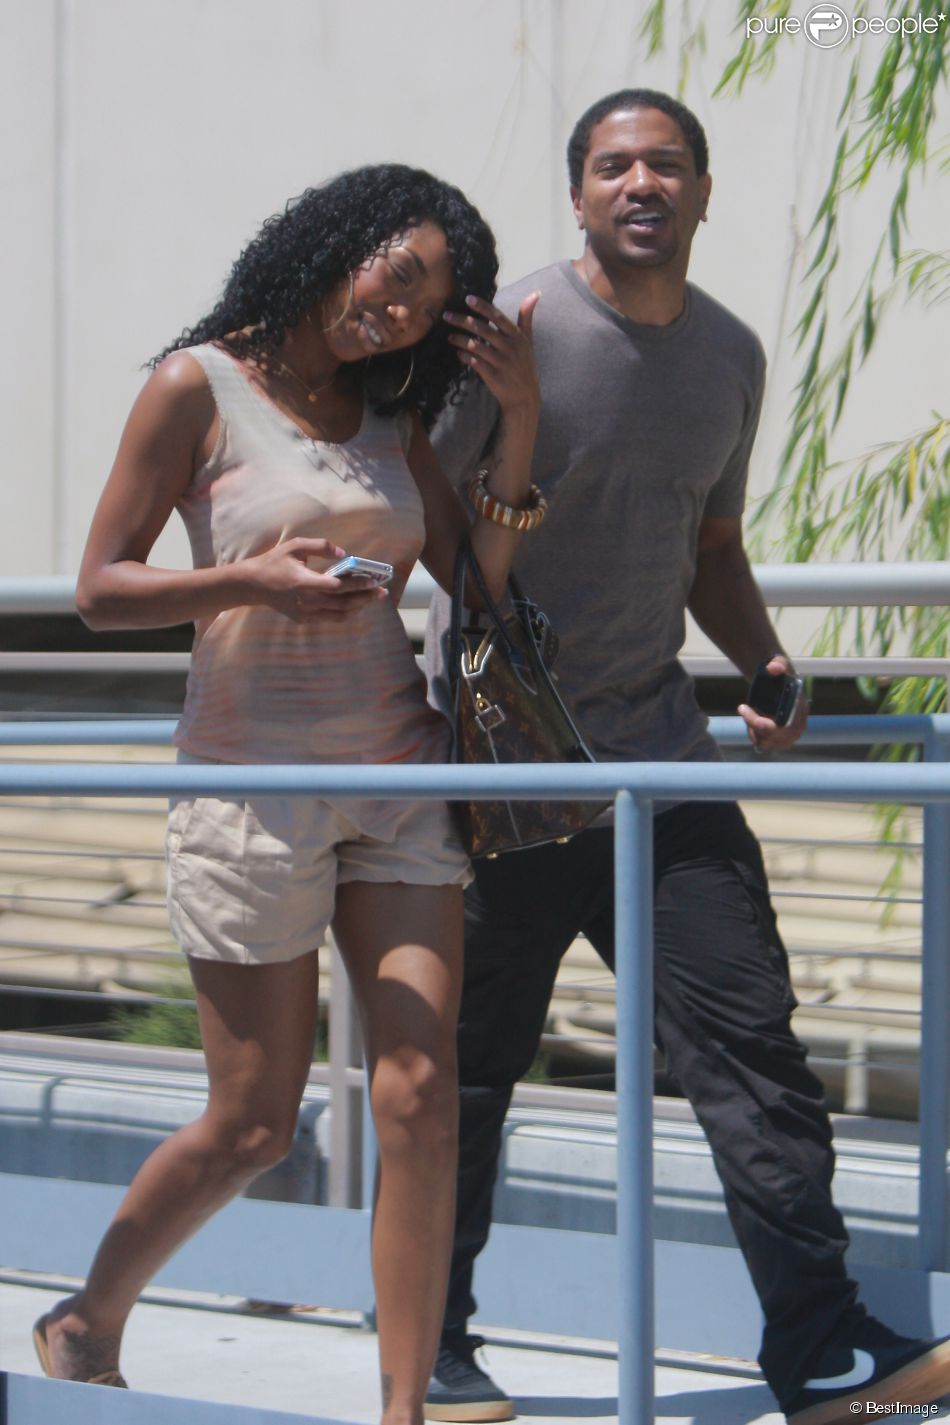 Exclusif - Brandy Norwood et Ryan Press dans les rues de Los Angeles, le 22 août 2012.